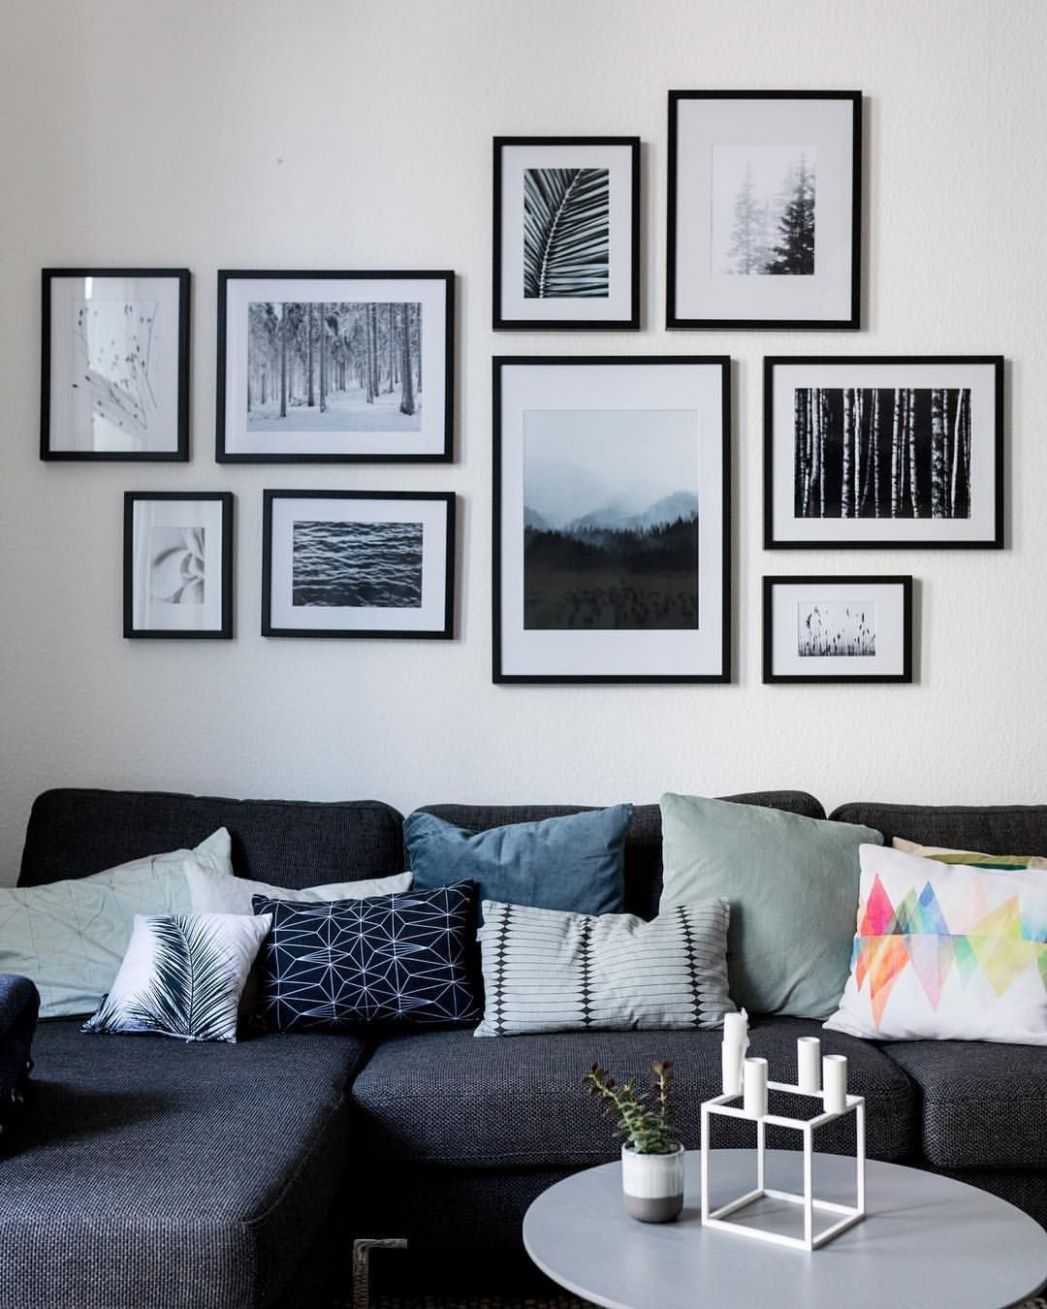 11 Best Wall Decoration Ideas Creative for Your Home | Living room ..